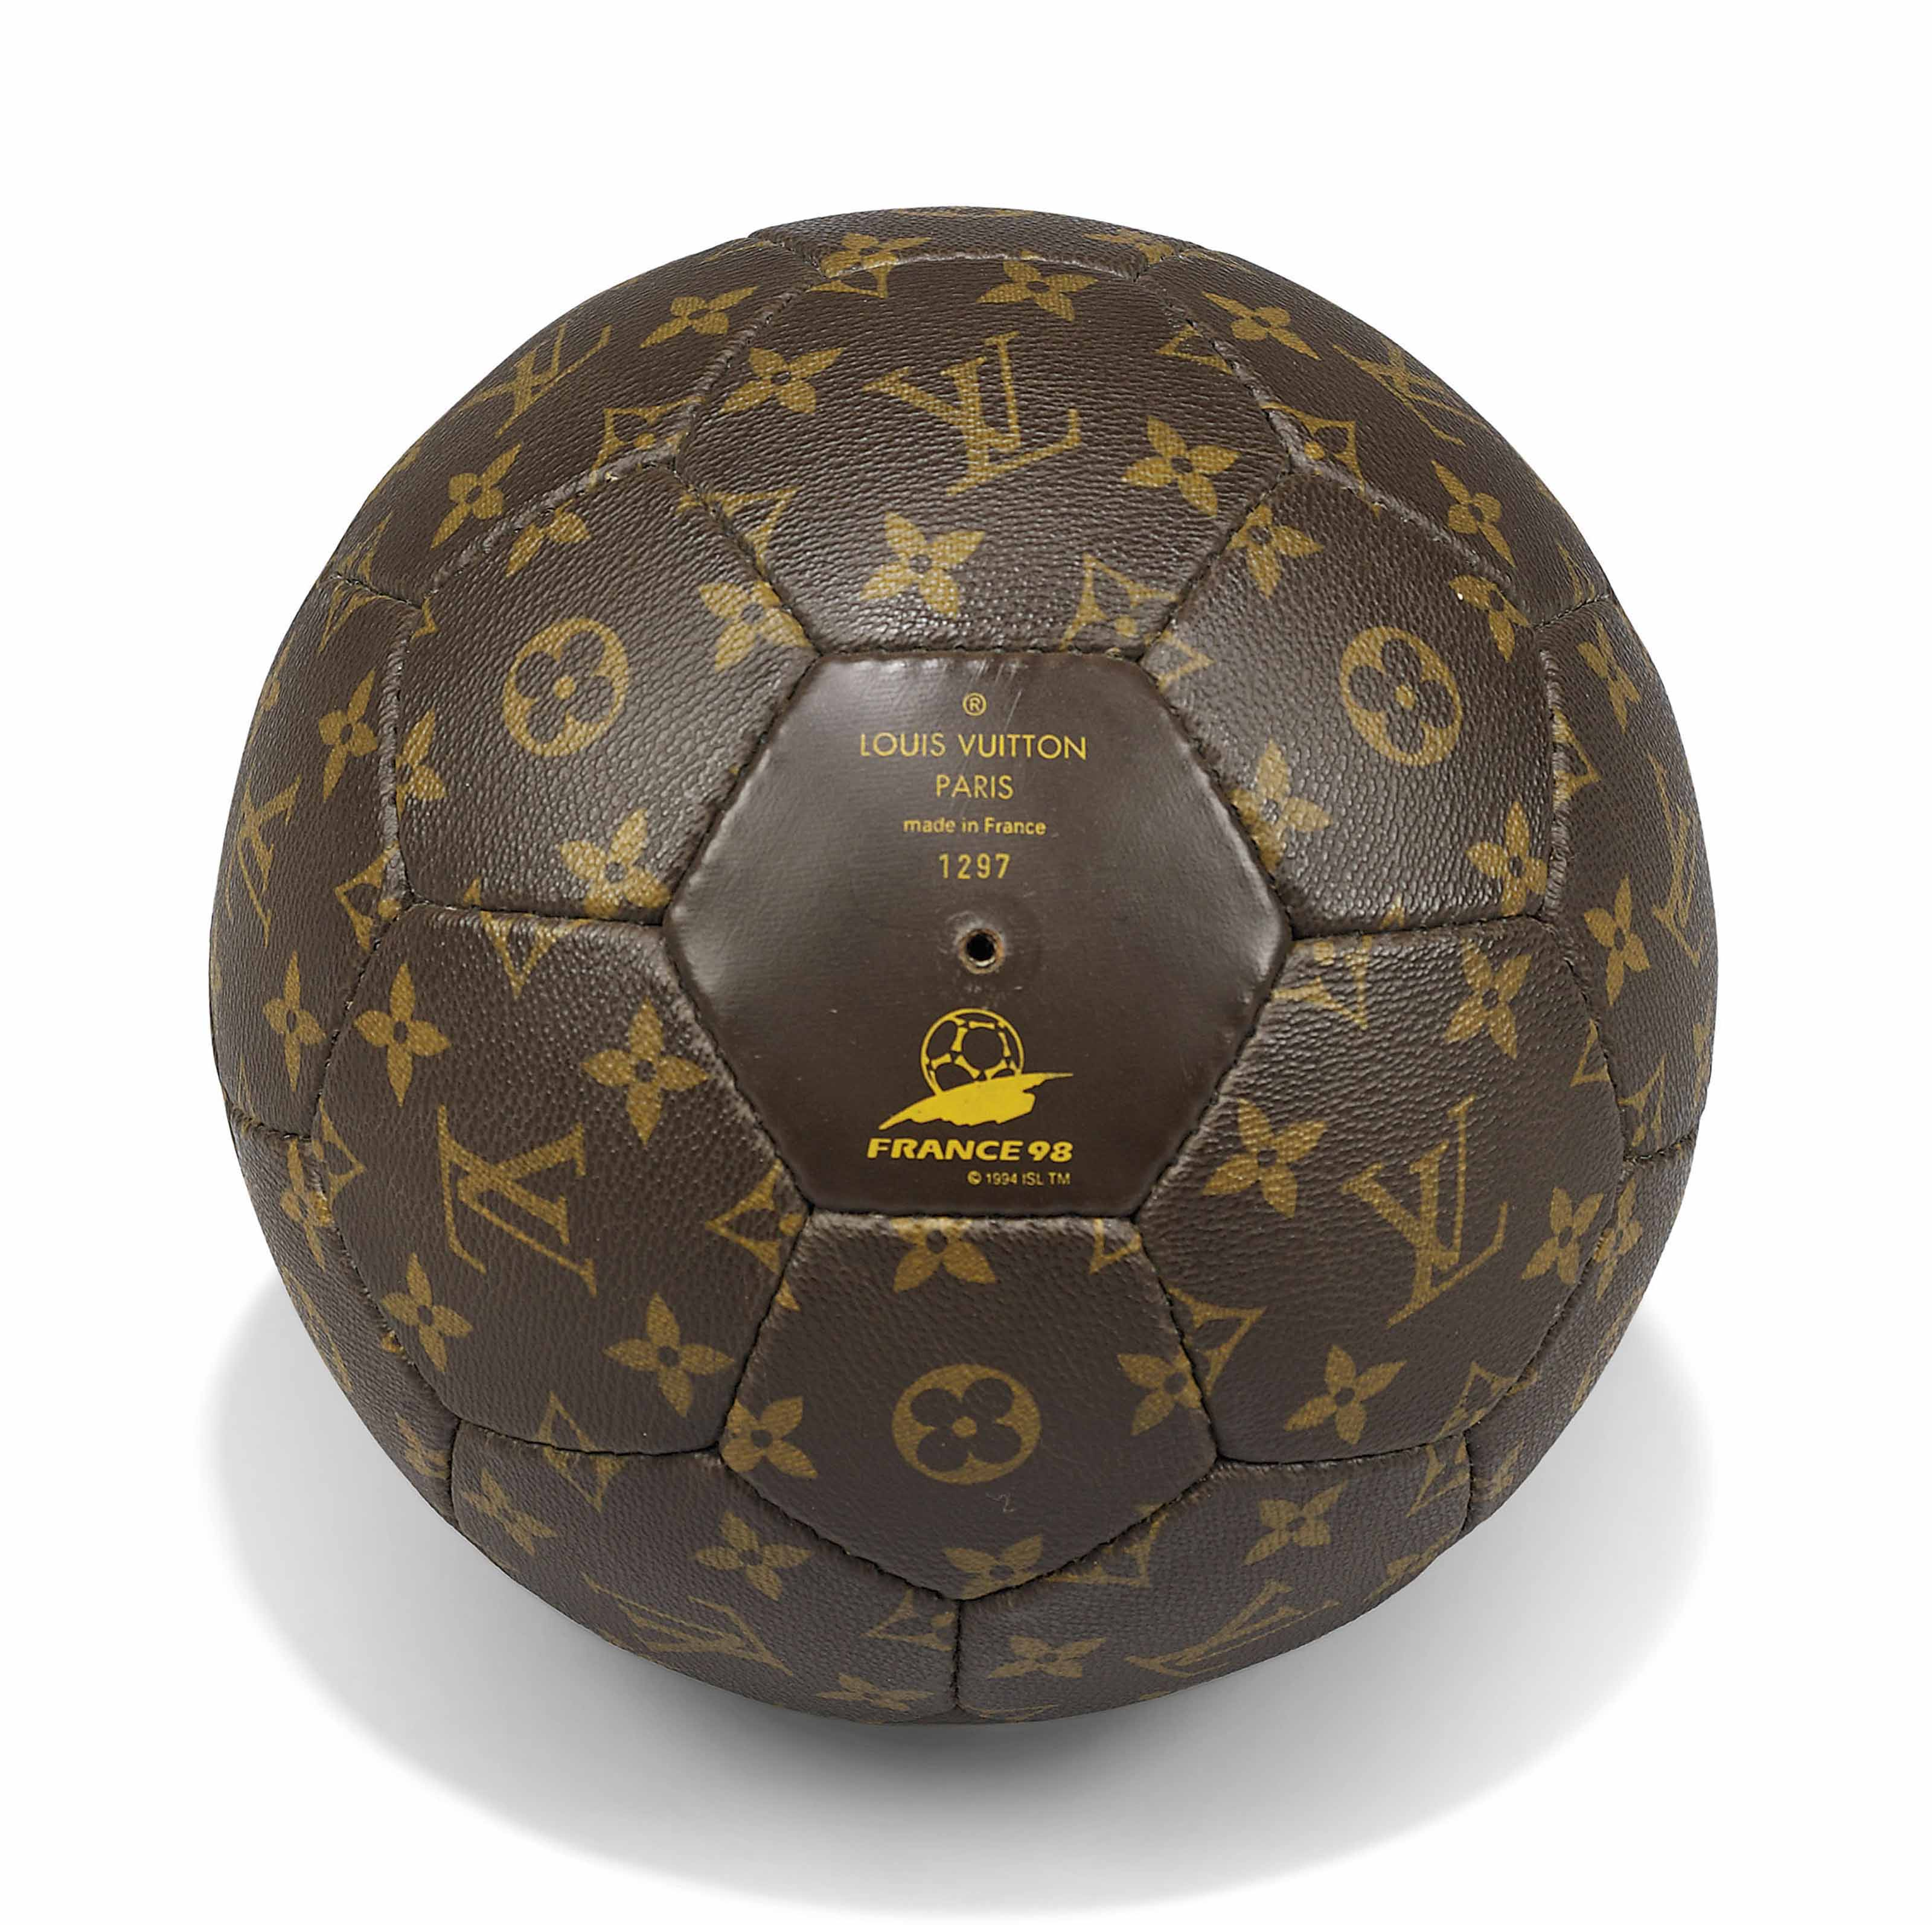 b3cc842ea4fc A LIMITED EDITION MONOGRAM CANVAS 1998 FRANCE WORLD CUP FOOTBALL WITH  NOMADE LEATHER CARRIER